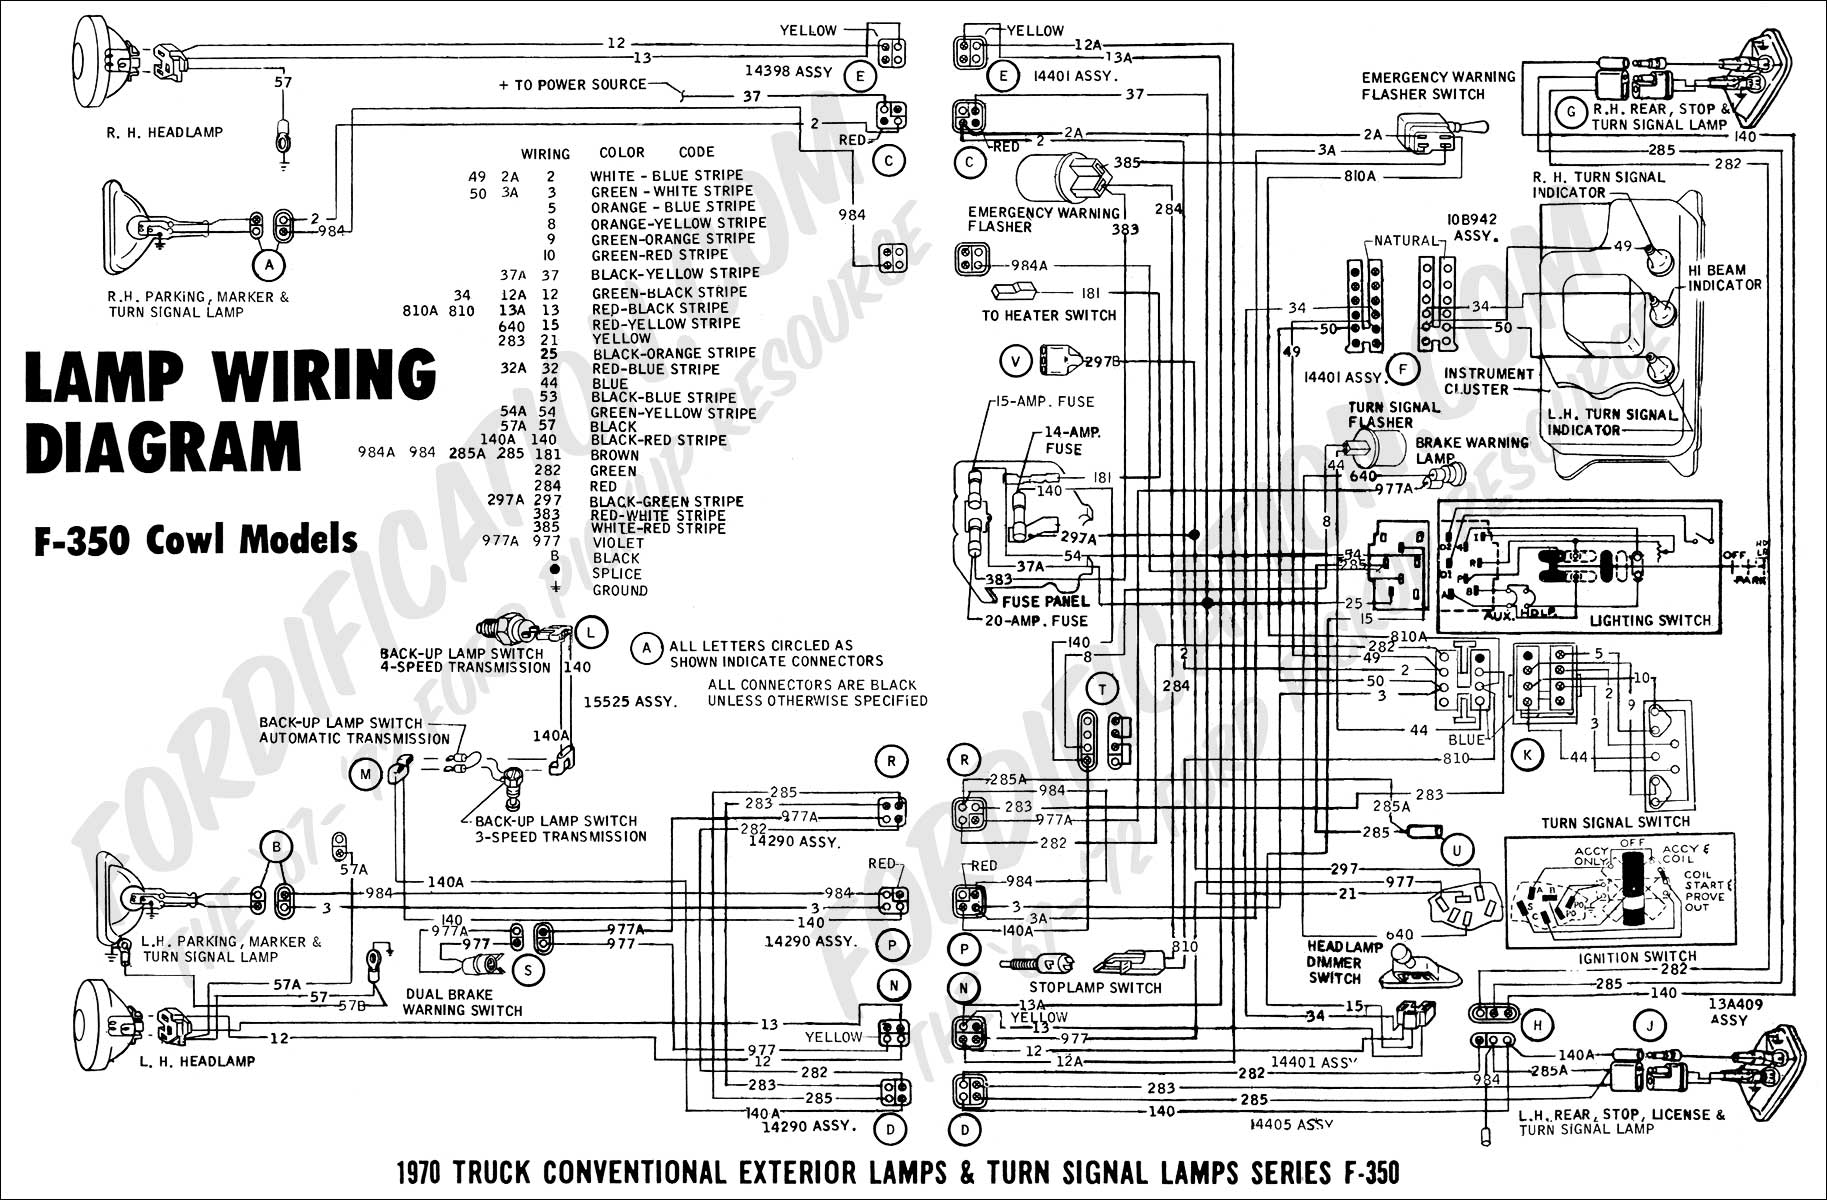 1988 Toyota Pickup Radio Wiring Diagram Free Download Wiring Diagram